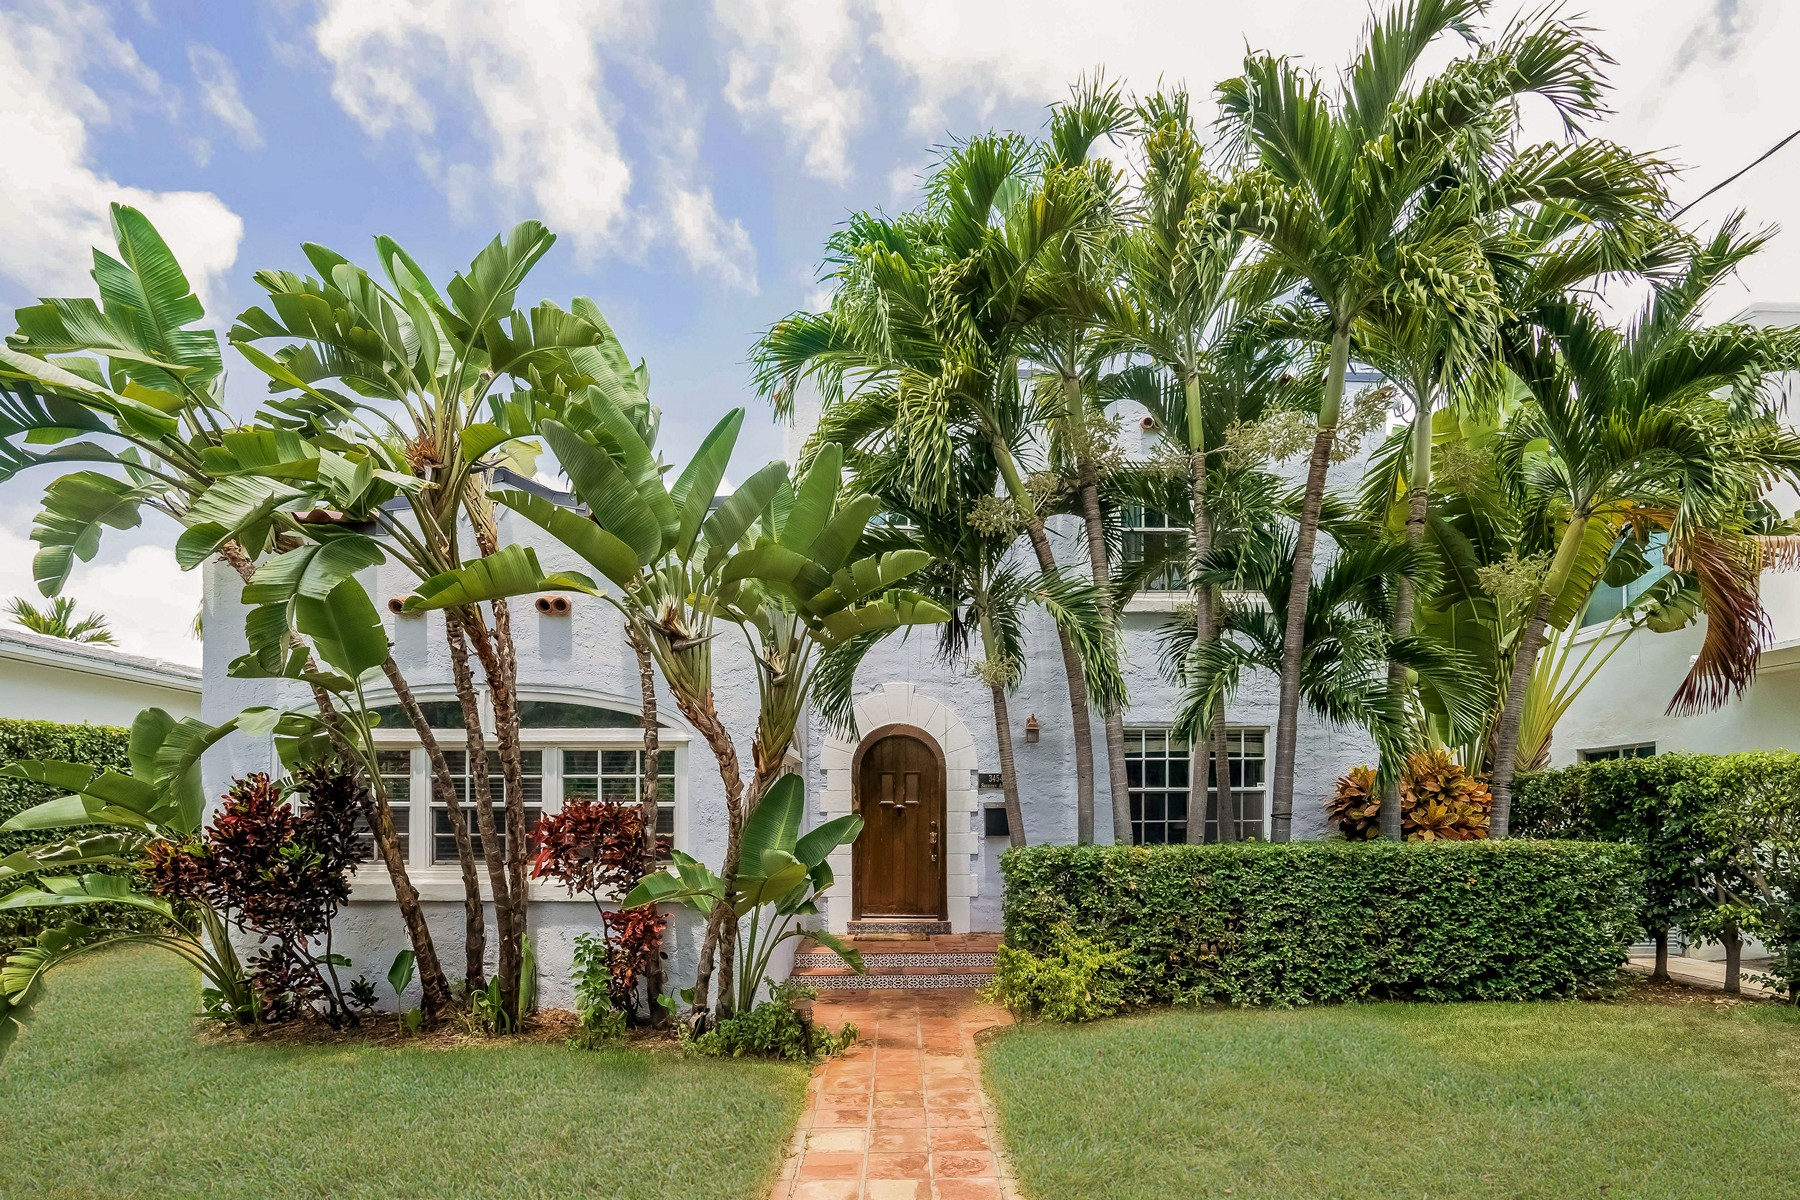 Single Family Home for Sale at 3454 Sheridan Ave Miami Beach, Florida 33140 United States